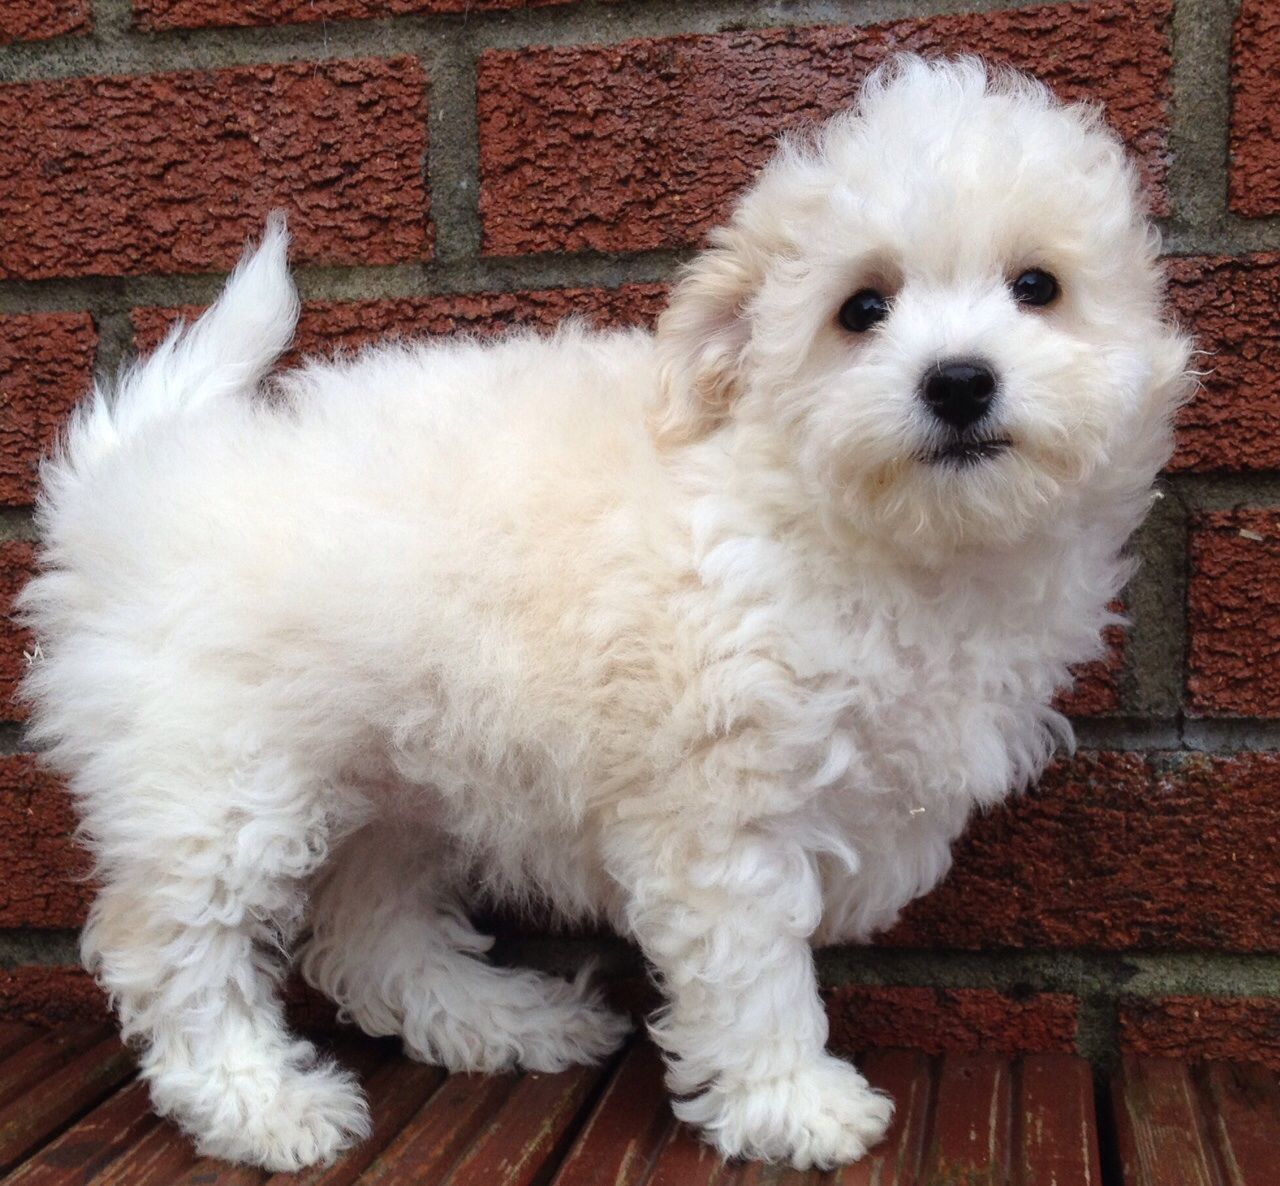 Toy Poodle X Bichon Frise Female Puppy For Sale Bichon Frise